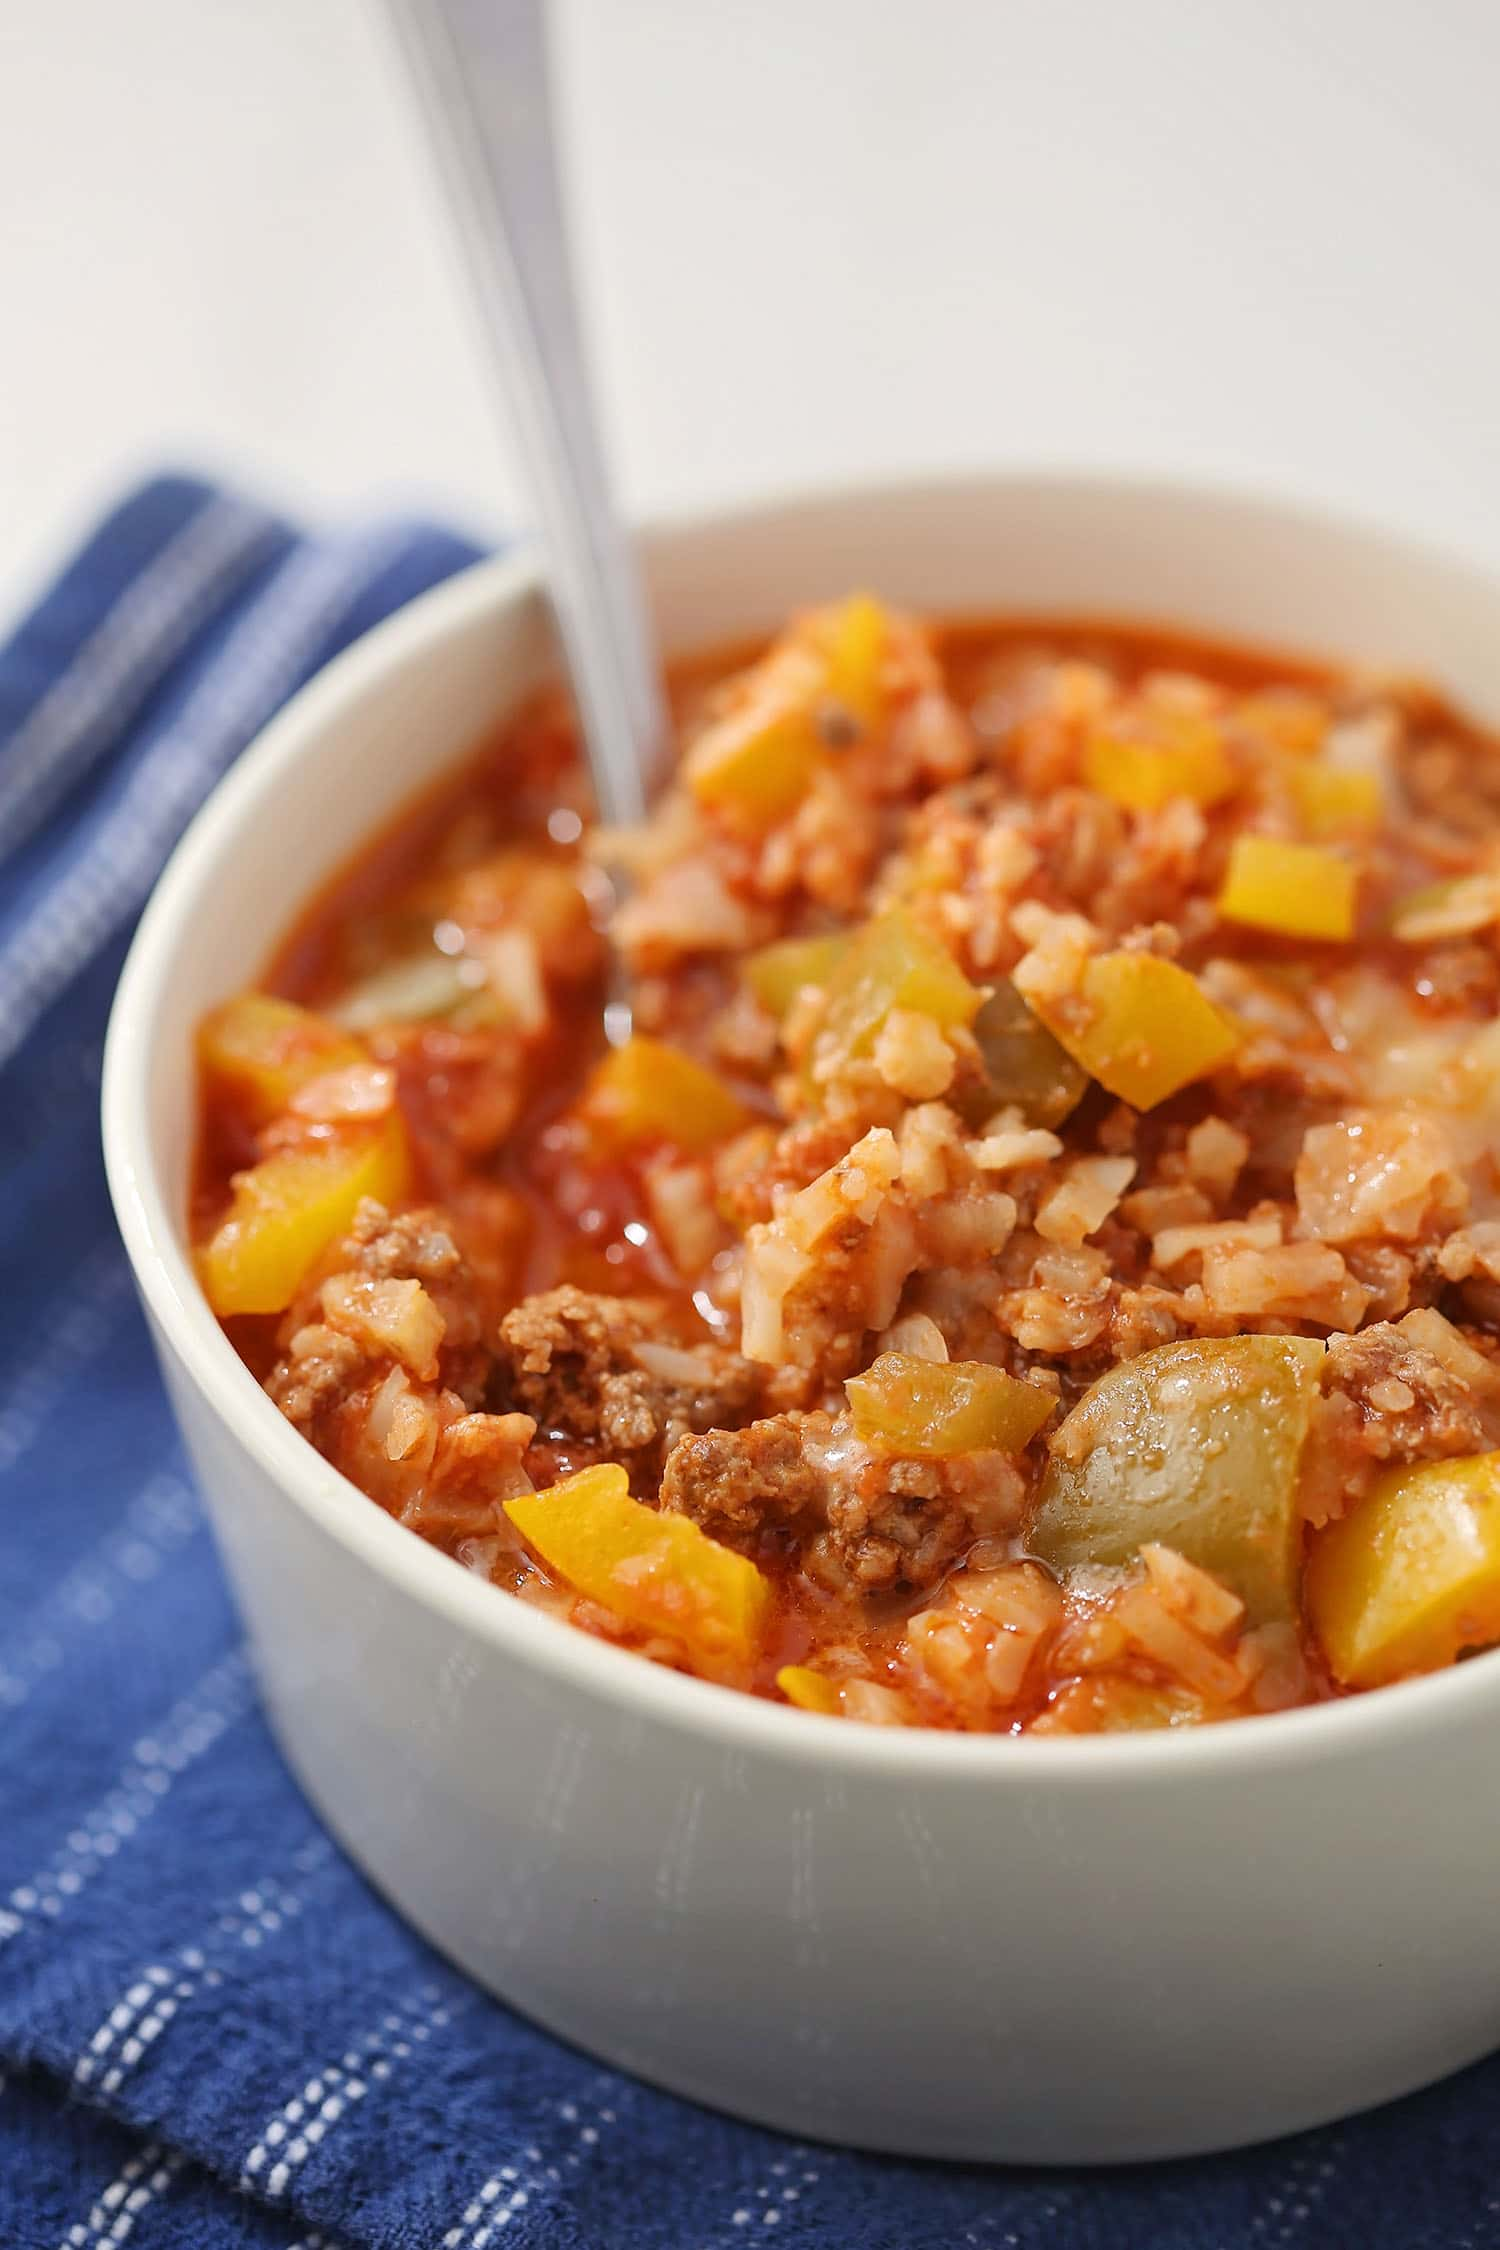 Low Carb Unstuffed Pepper in the serving bowl